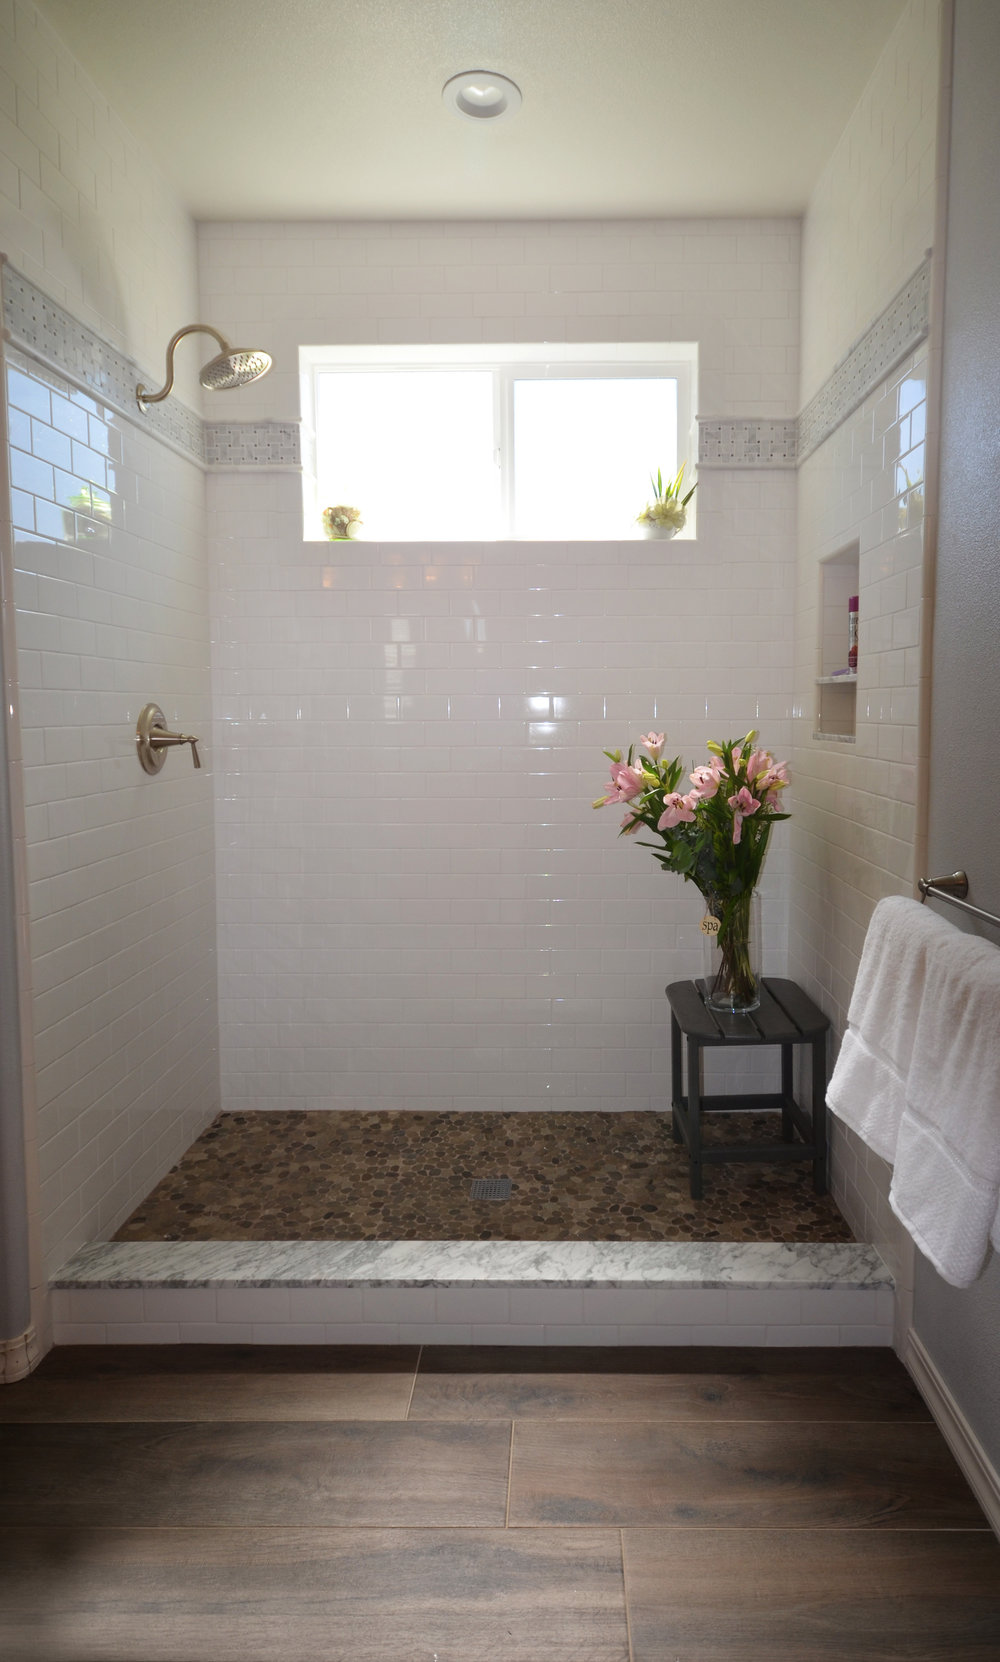 Bathroom Remodeling Services San Luis Obispo Santa Barbara - Quality advantage bathroom remodeling